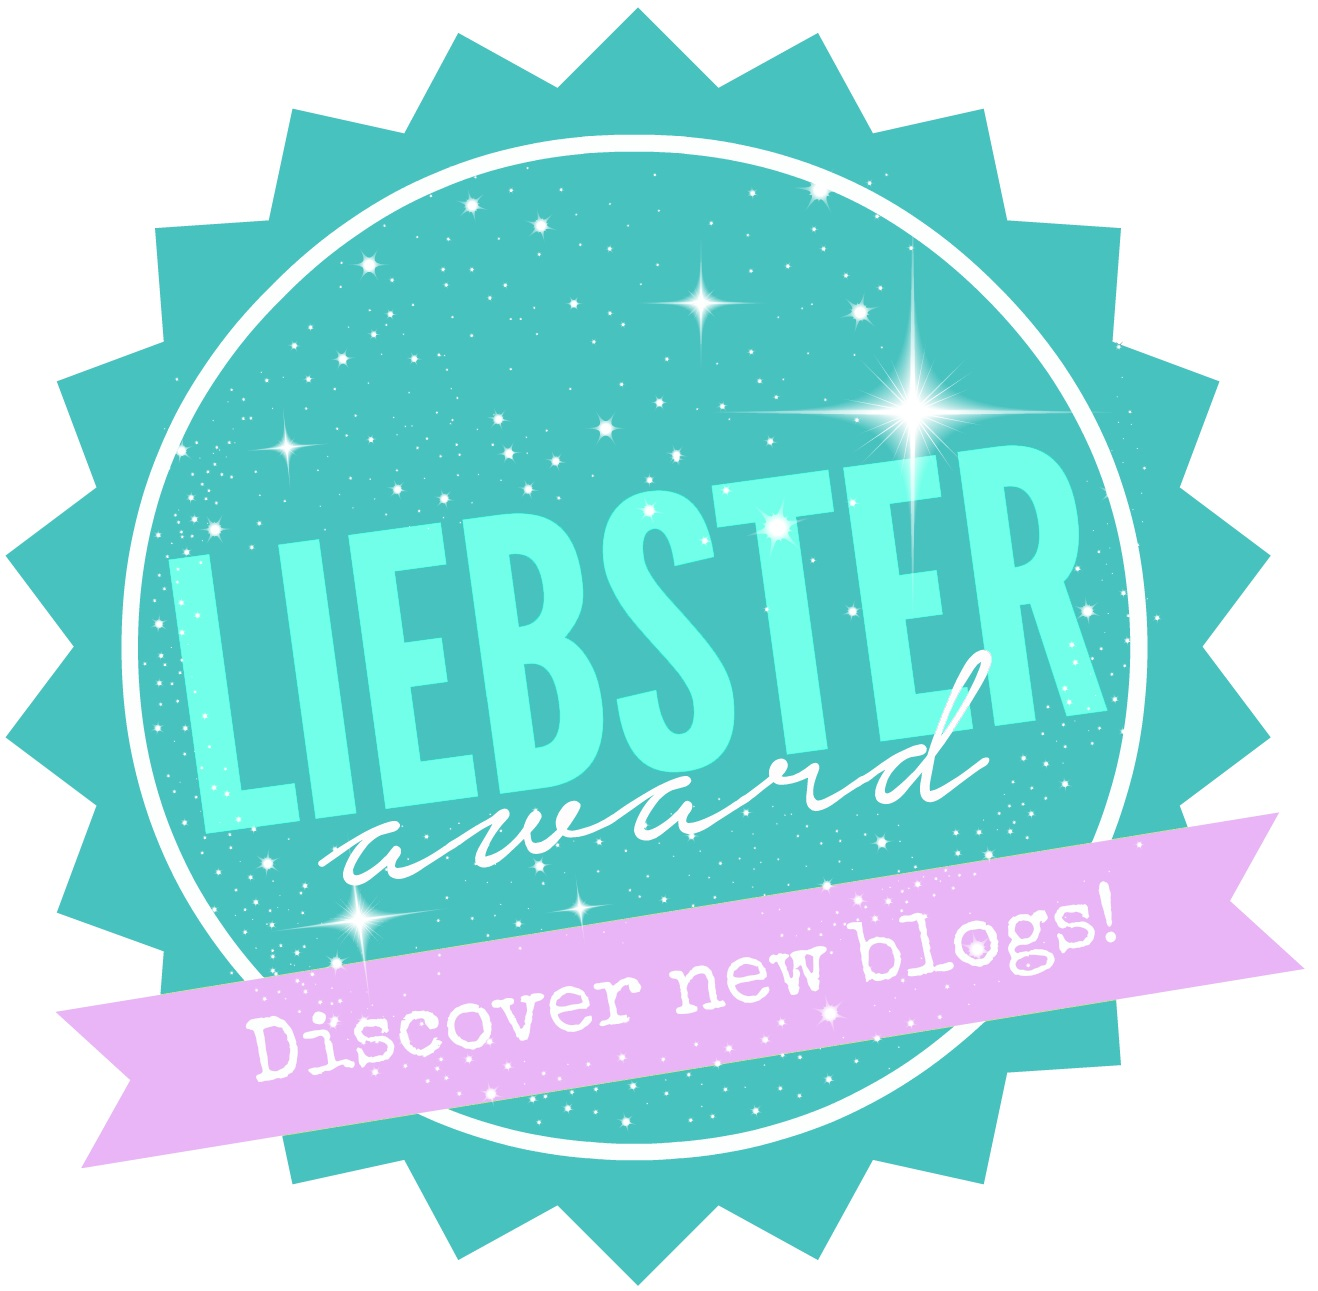 Liebster-award-wordpress-blogging